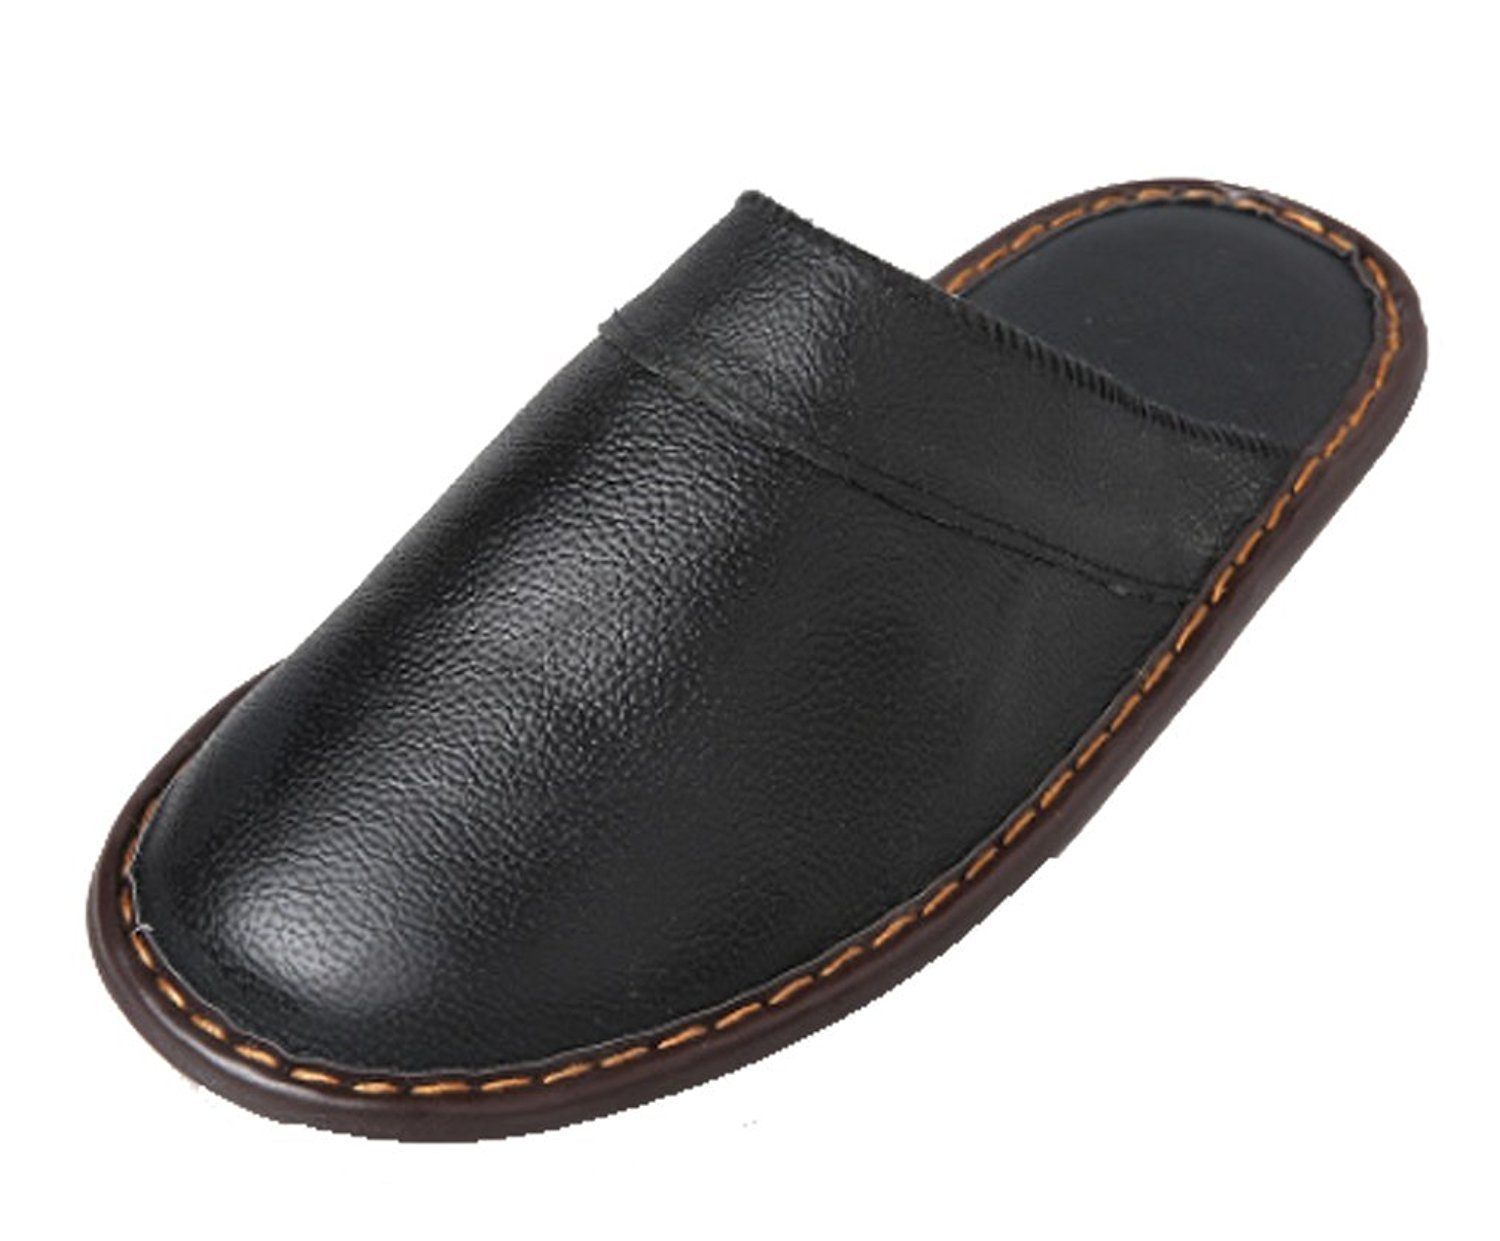 b152f2a55 Cheap Mens Leather House Slippers, find Mens Leather House Slippers ...